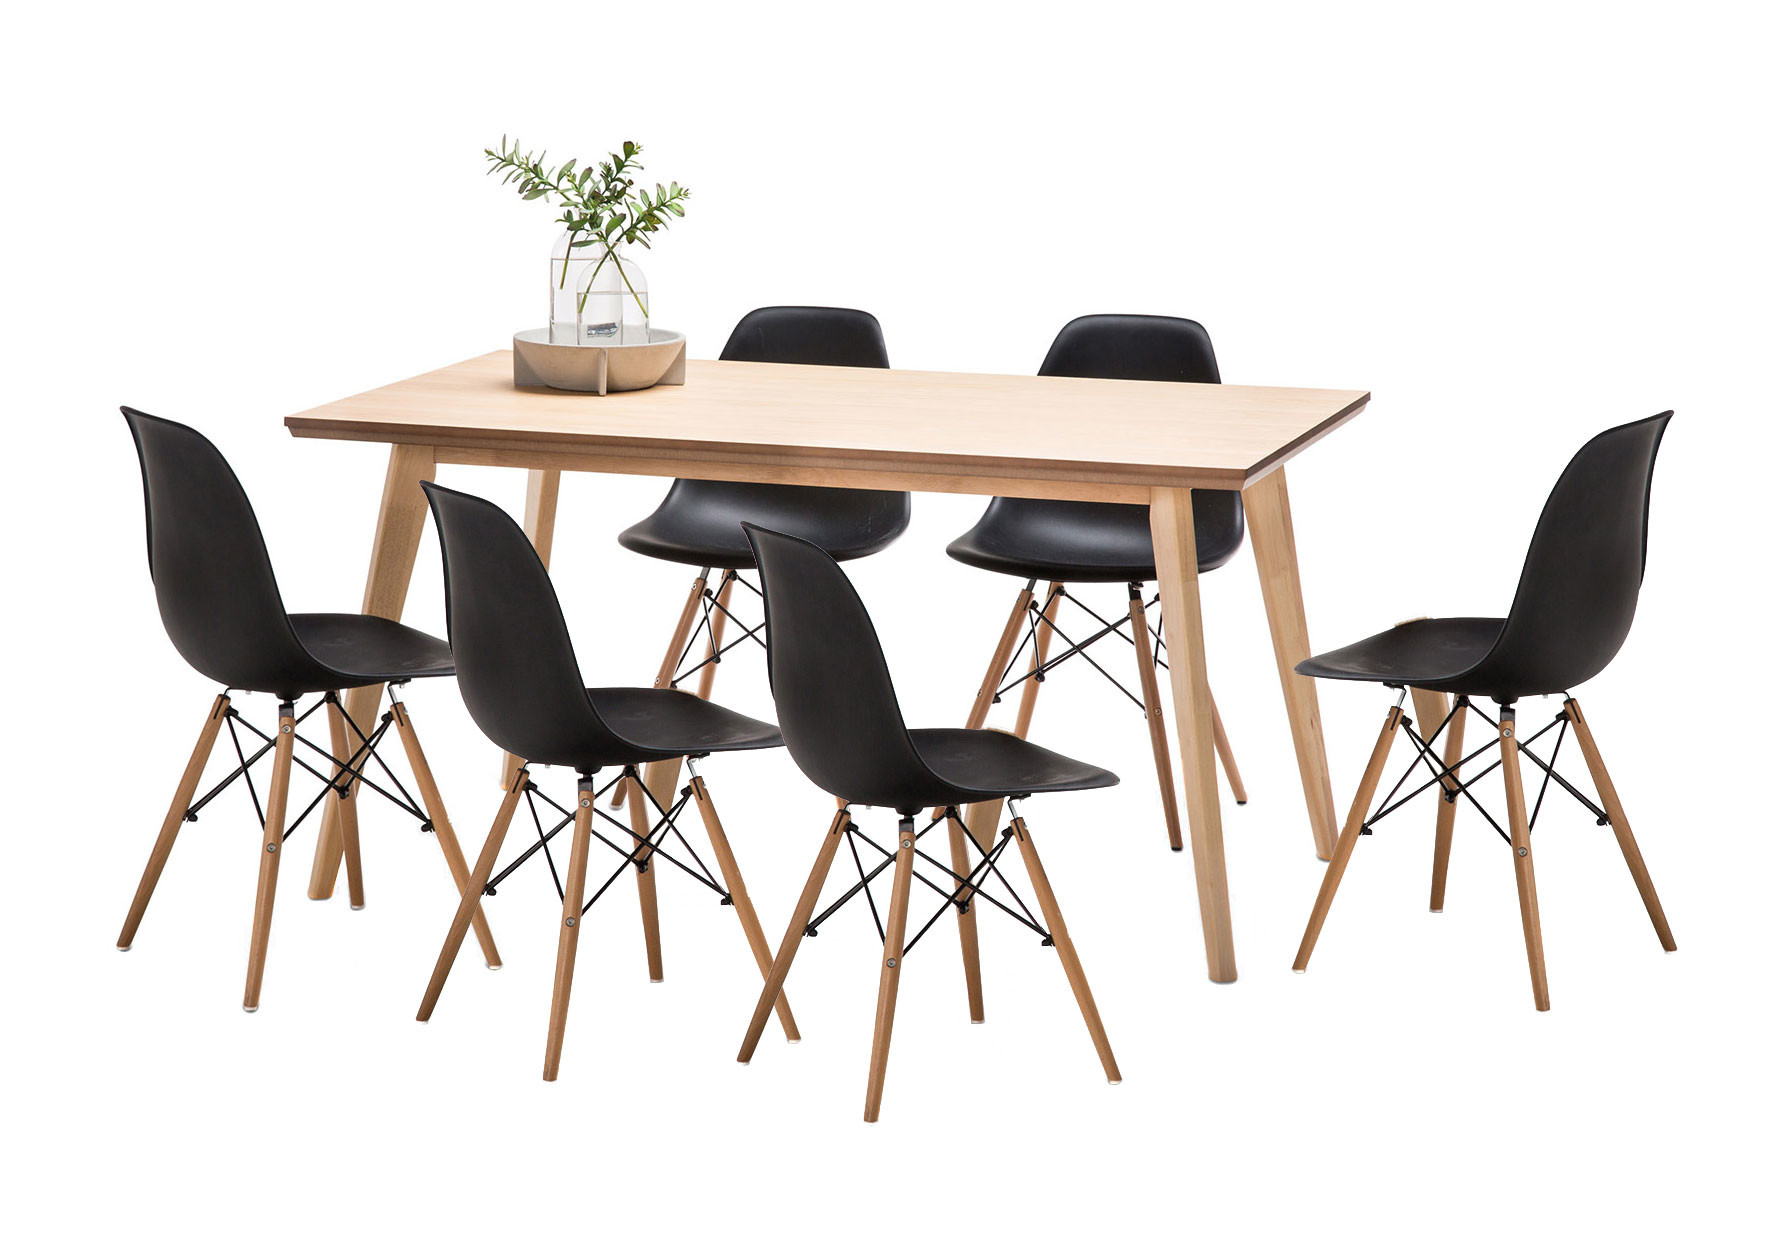 SKU #FEEL1393 Wyatt Dining Table Set With 6 Replica Eames Chairs Is Also  Sometimes Listed Under The Following Manufacturer Numbers: 41 052 Kit 7, ...